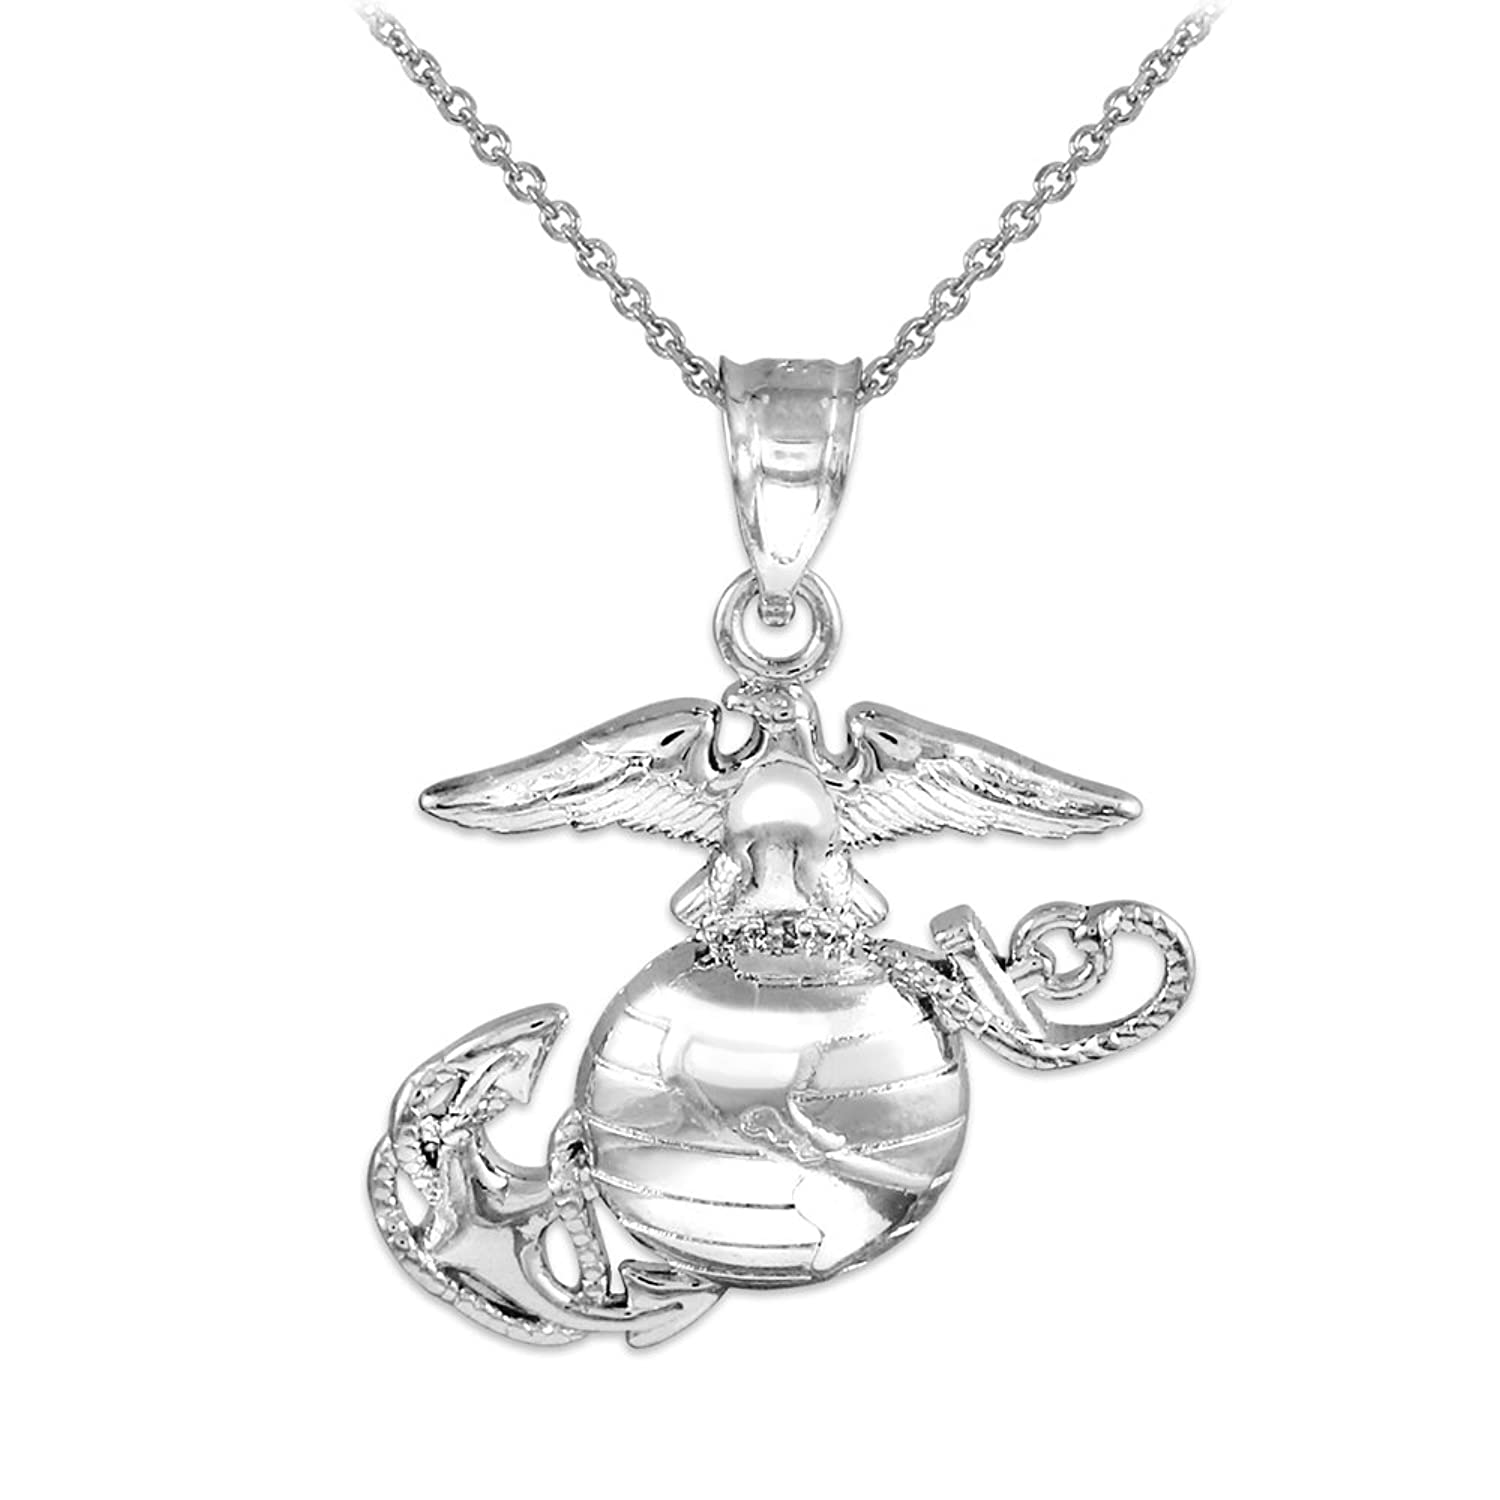 925 Sterling Silver Medium Patriot Charm US Marine Corps Military Pendant Necklace